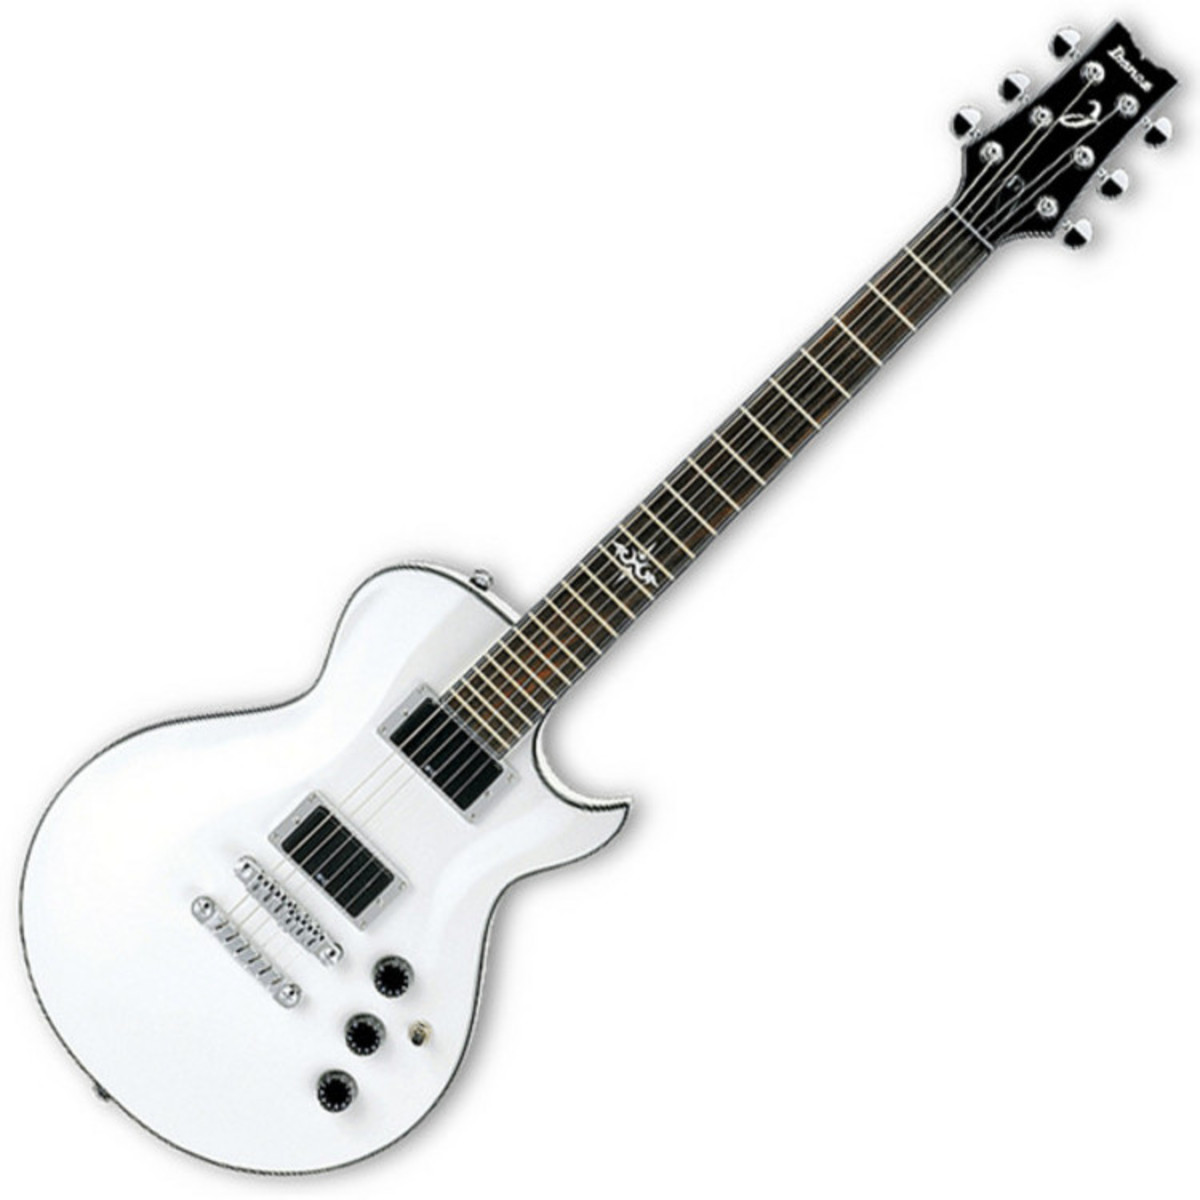 disc ibanez art120 electric guitar white at gear4music. Black Bedroom Furniture Sets. Home Design Ideas